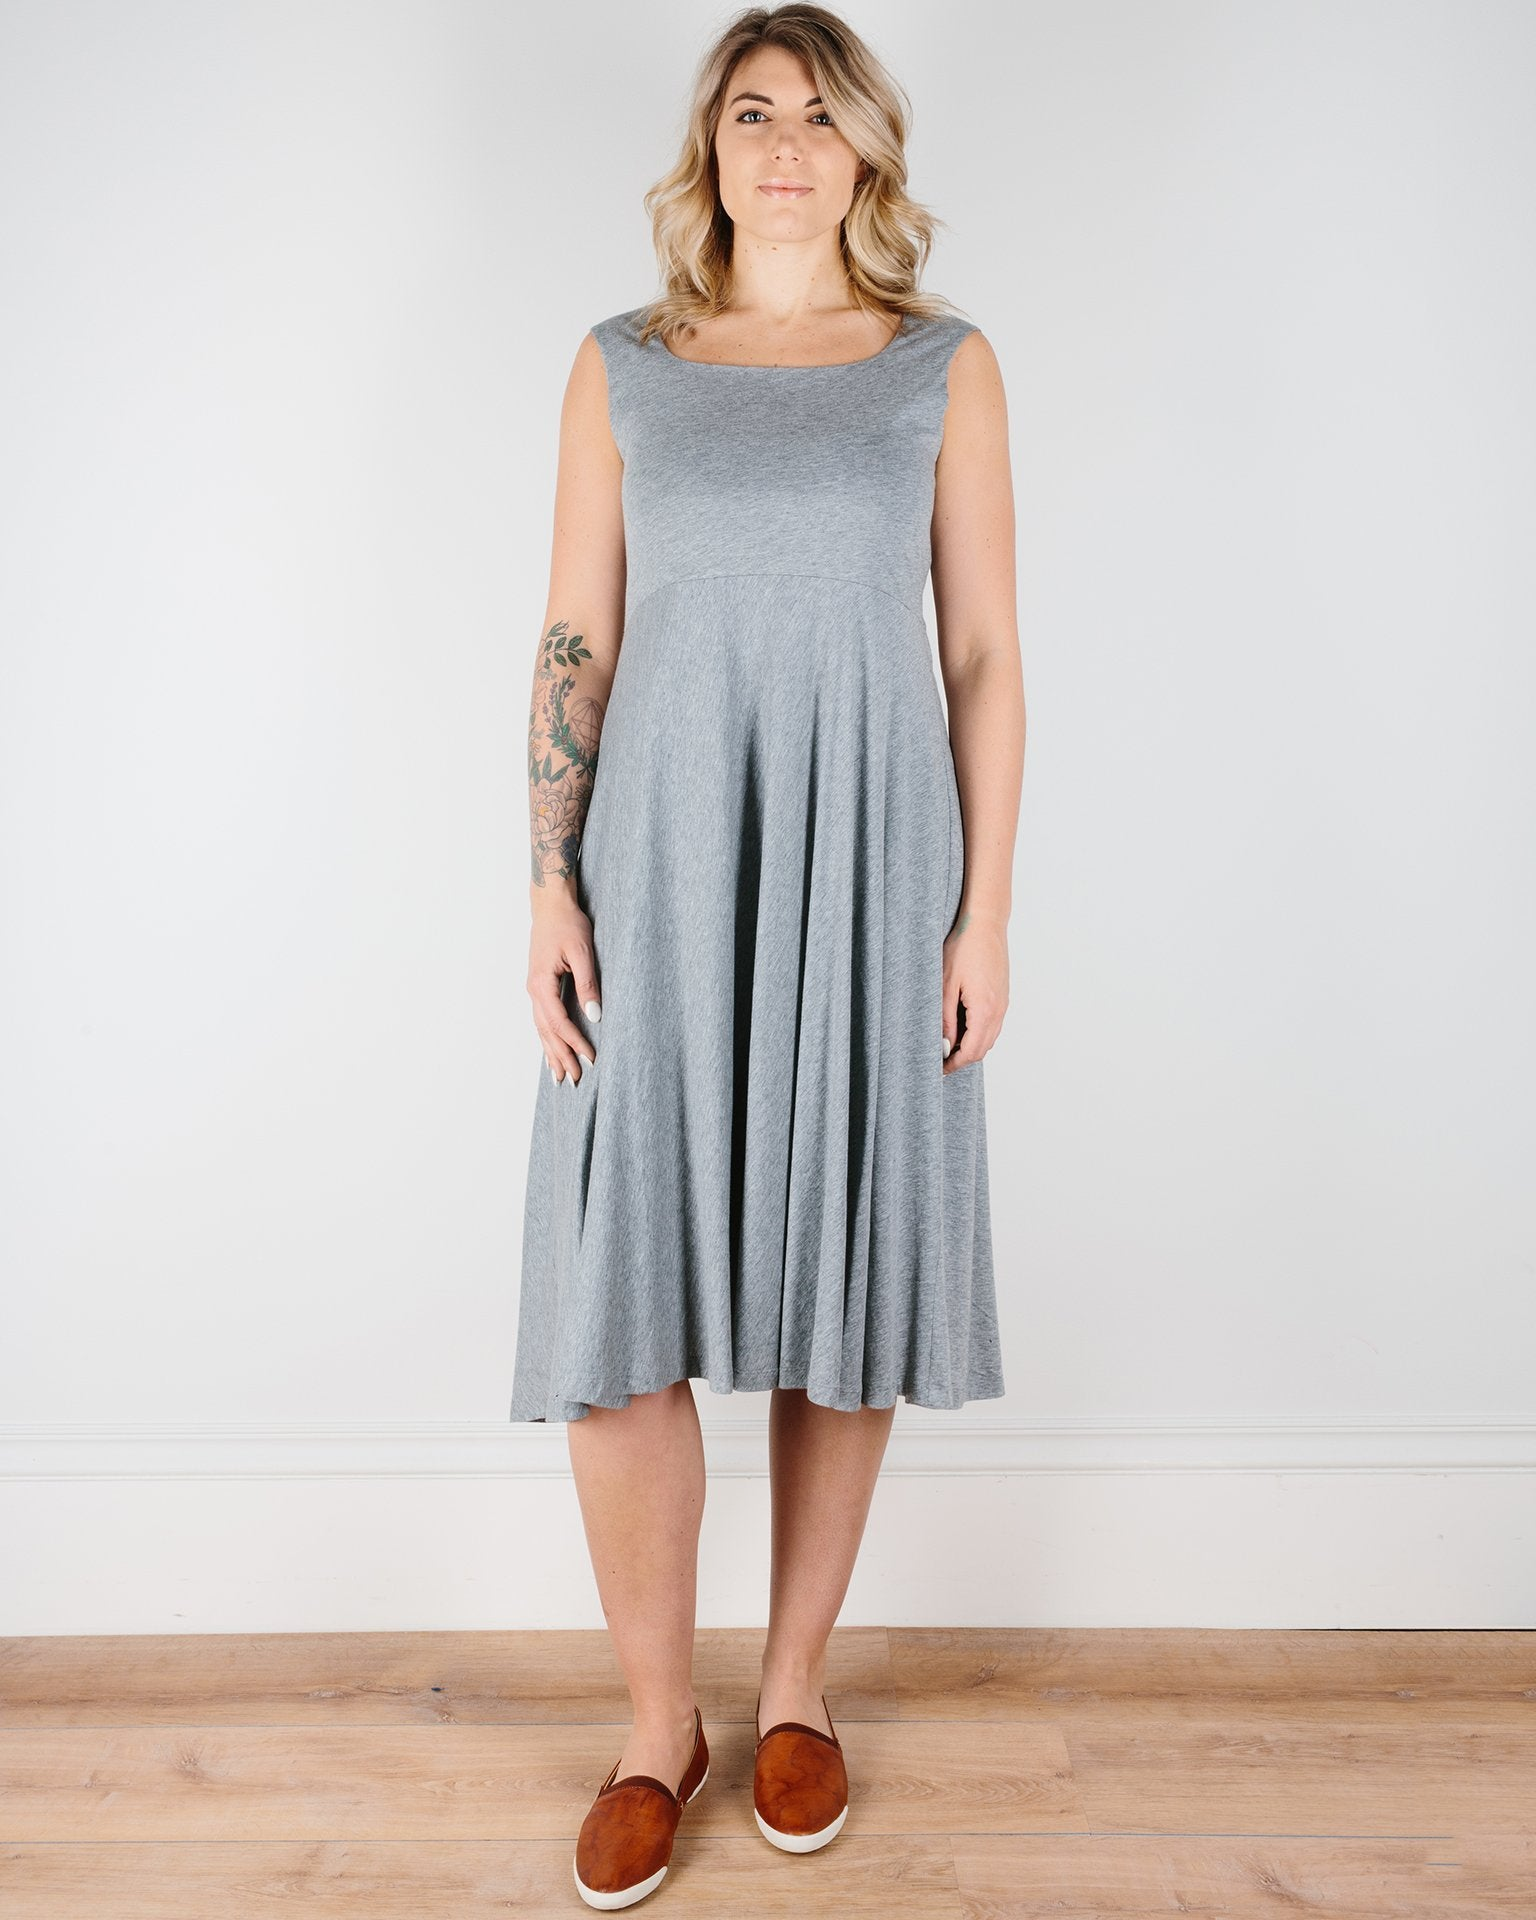 Demylee Clothing Heather Grey / XS Quinn Sleeveless Dress